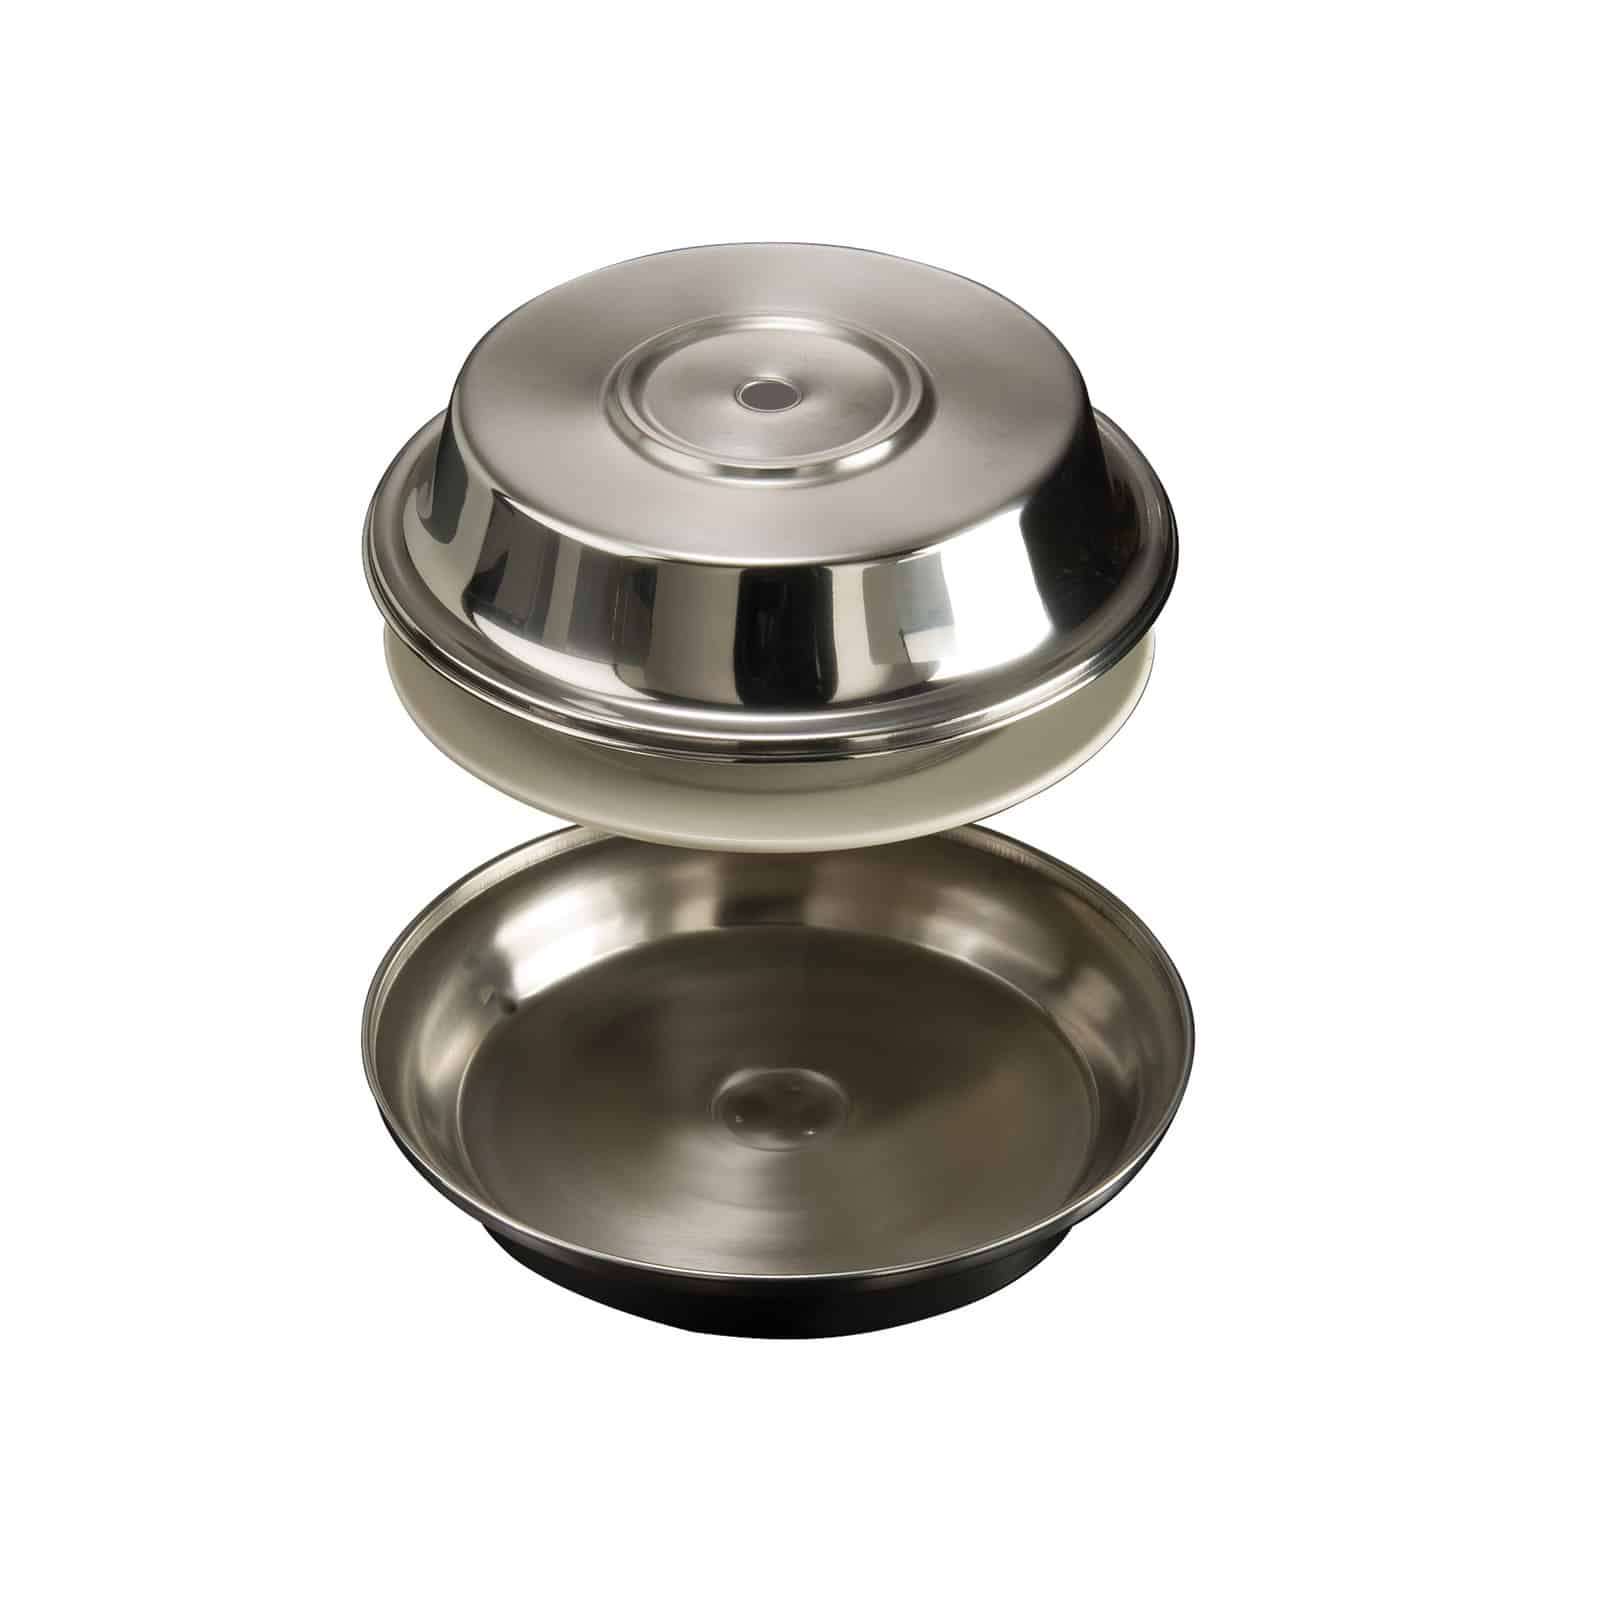 Plate Covers Standard Insulated Thermo Dri Hot Food Bases